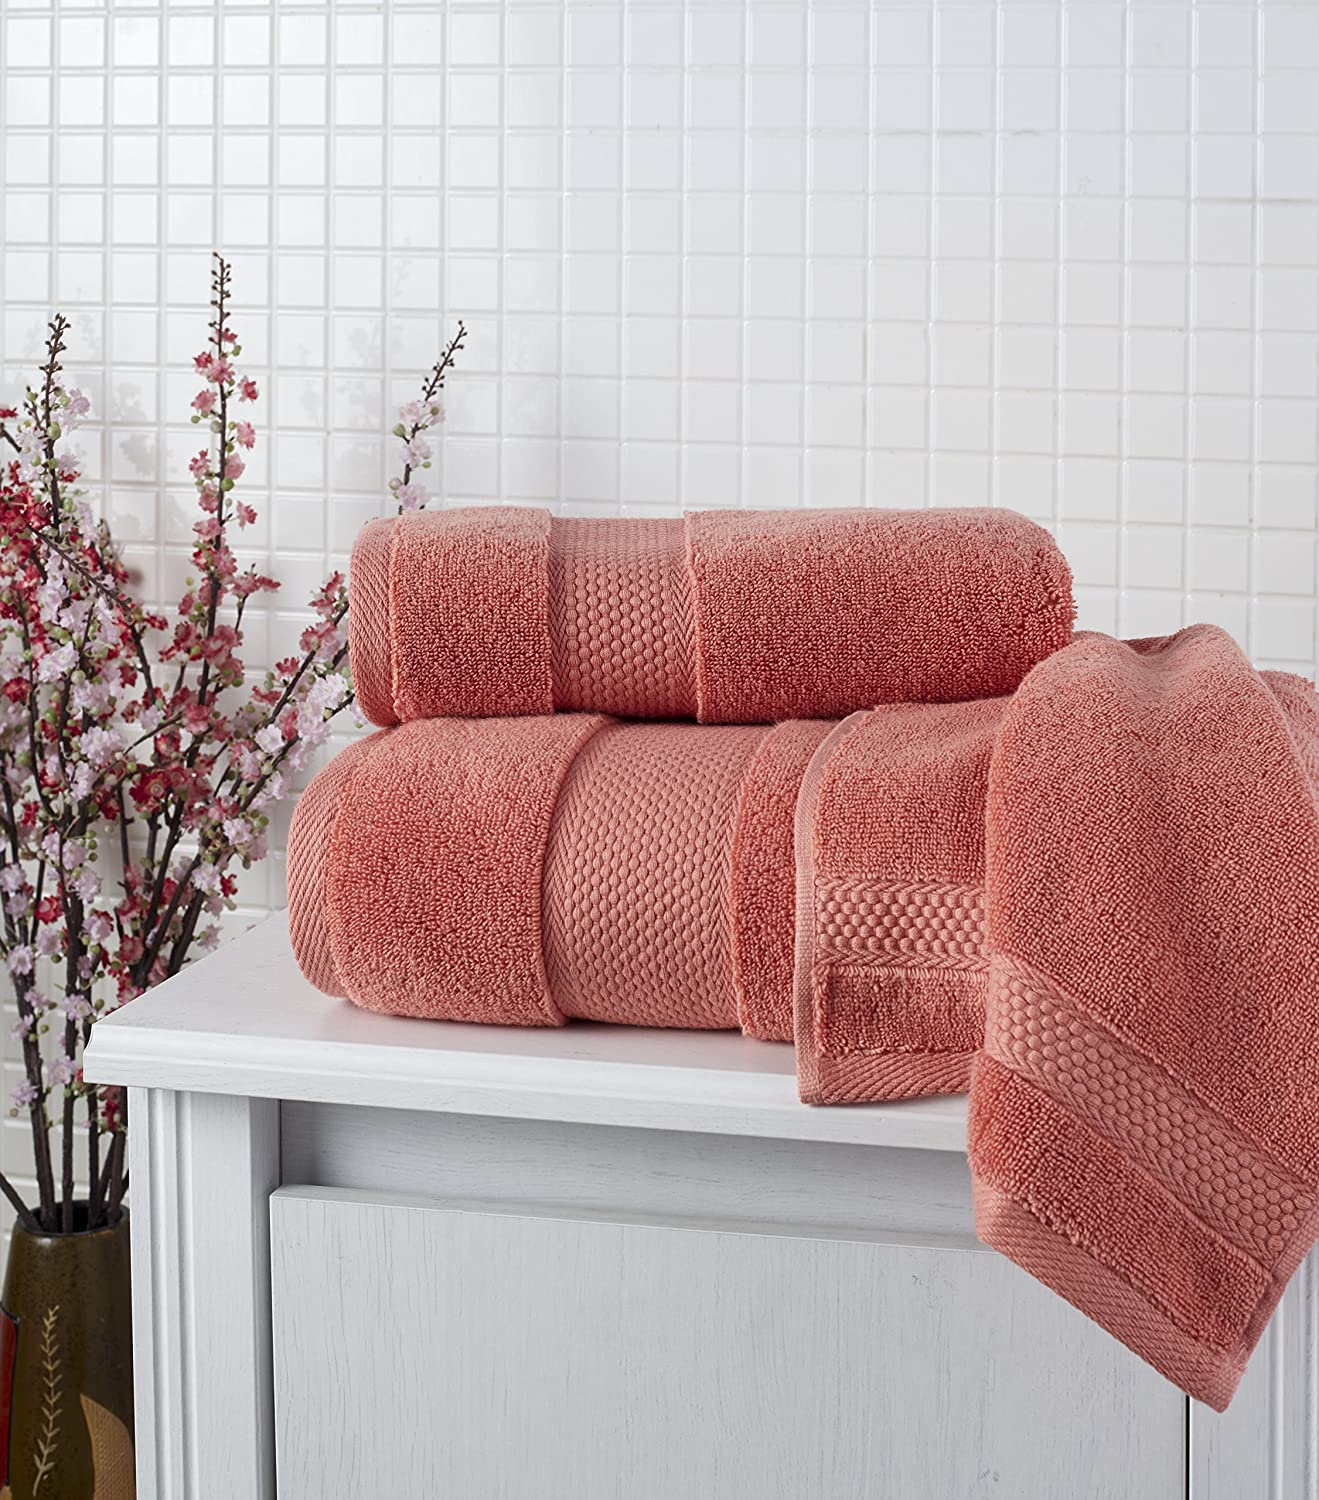 Bagno Milano Hotel Collection Towel Set 100/% Turkish Cotton Hotel Quality Highly Absorbent /& Extremely Soft CORAL RED 6 PCS